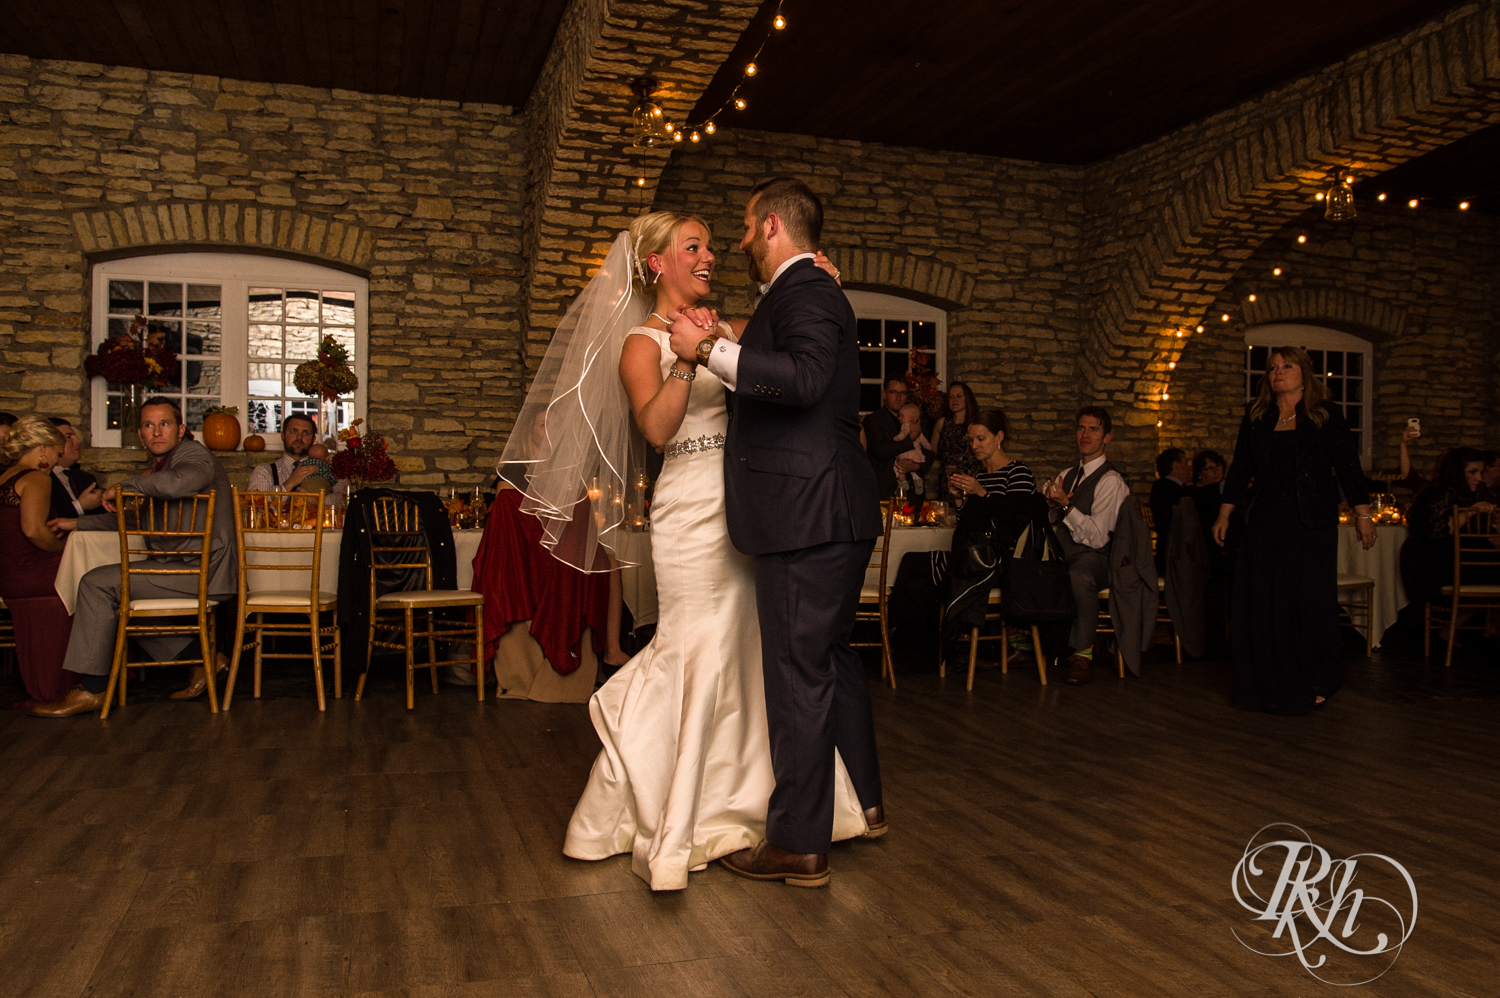 Amanda & Luke - Minnesota Wedding Photography - Mayowood Stone Barn - Rochester - RKH Images - Blog (65 of 67).jpg